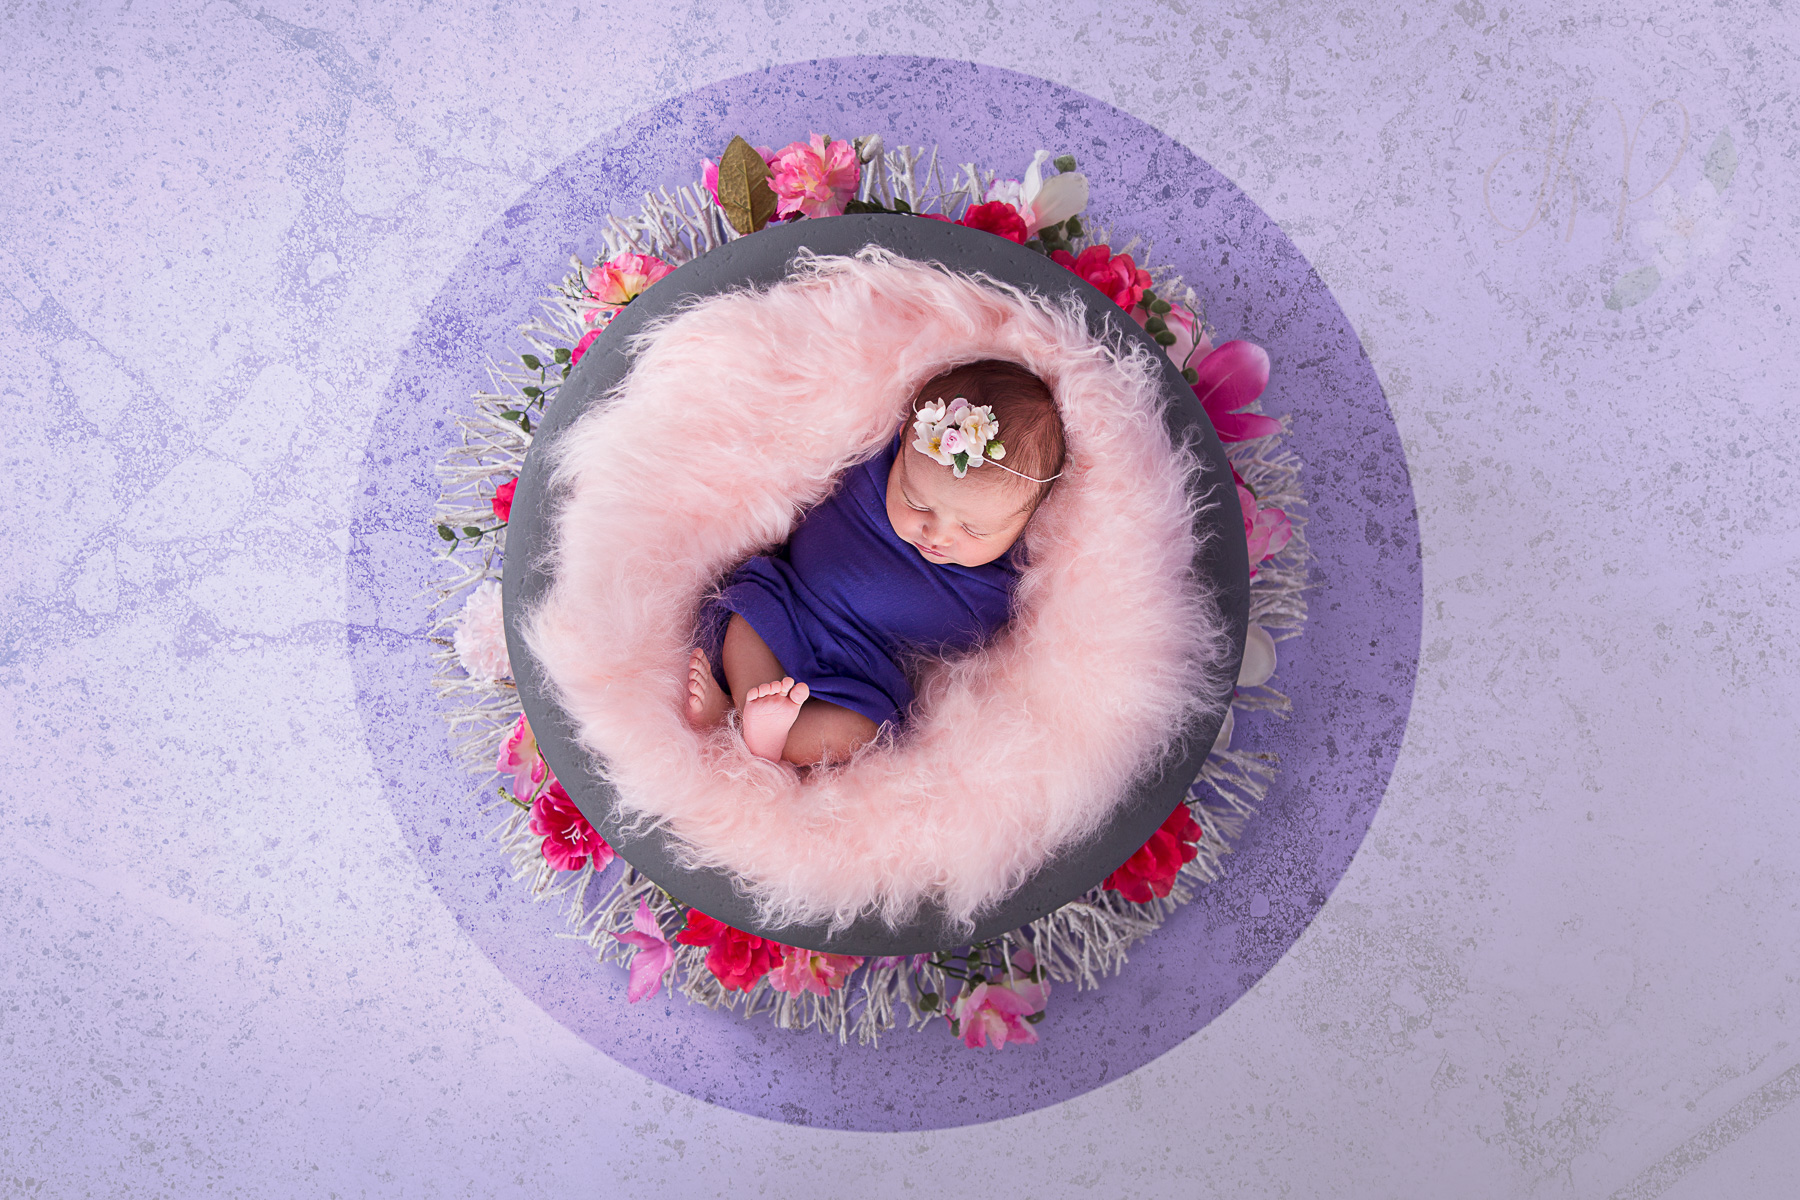 Image of newborn baby wrapped up and sleeping during newborn photo session.